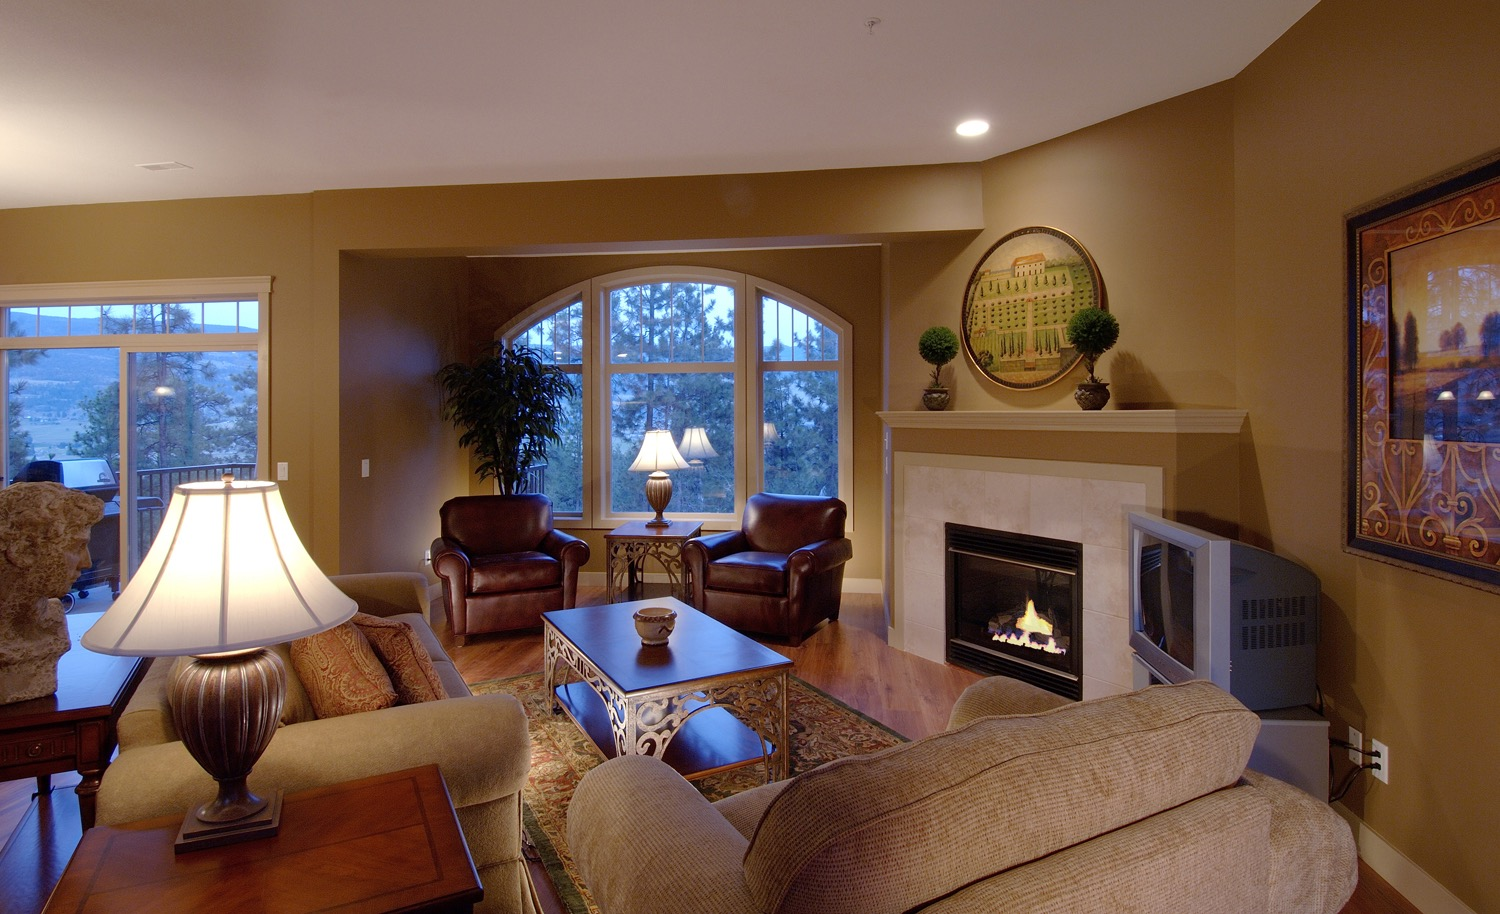 Creative Living Room Design (Image 7 of 36)